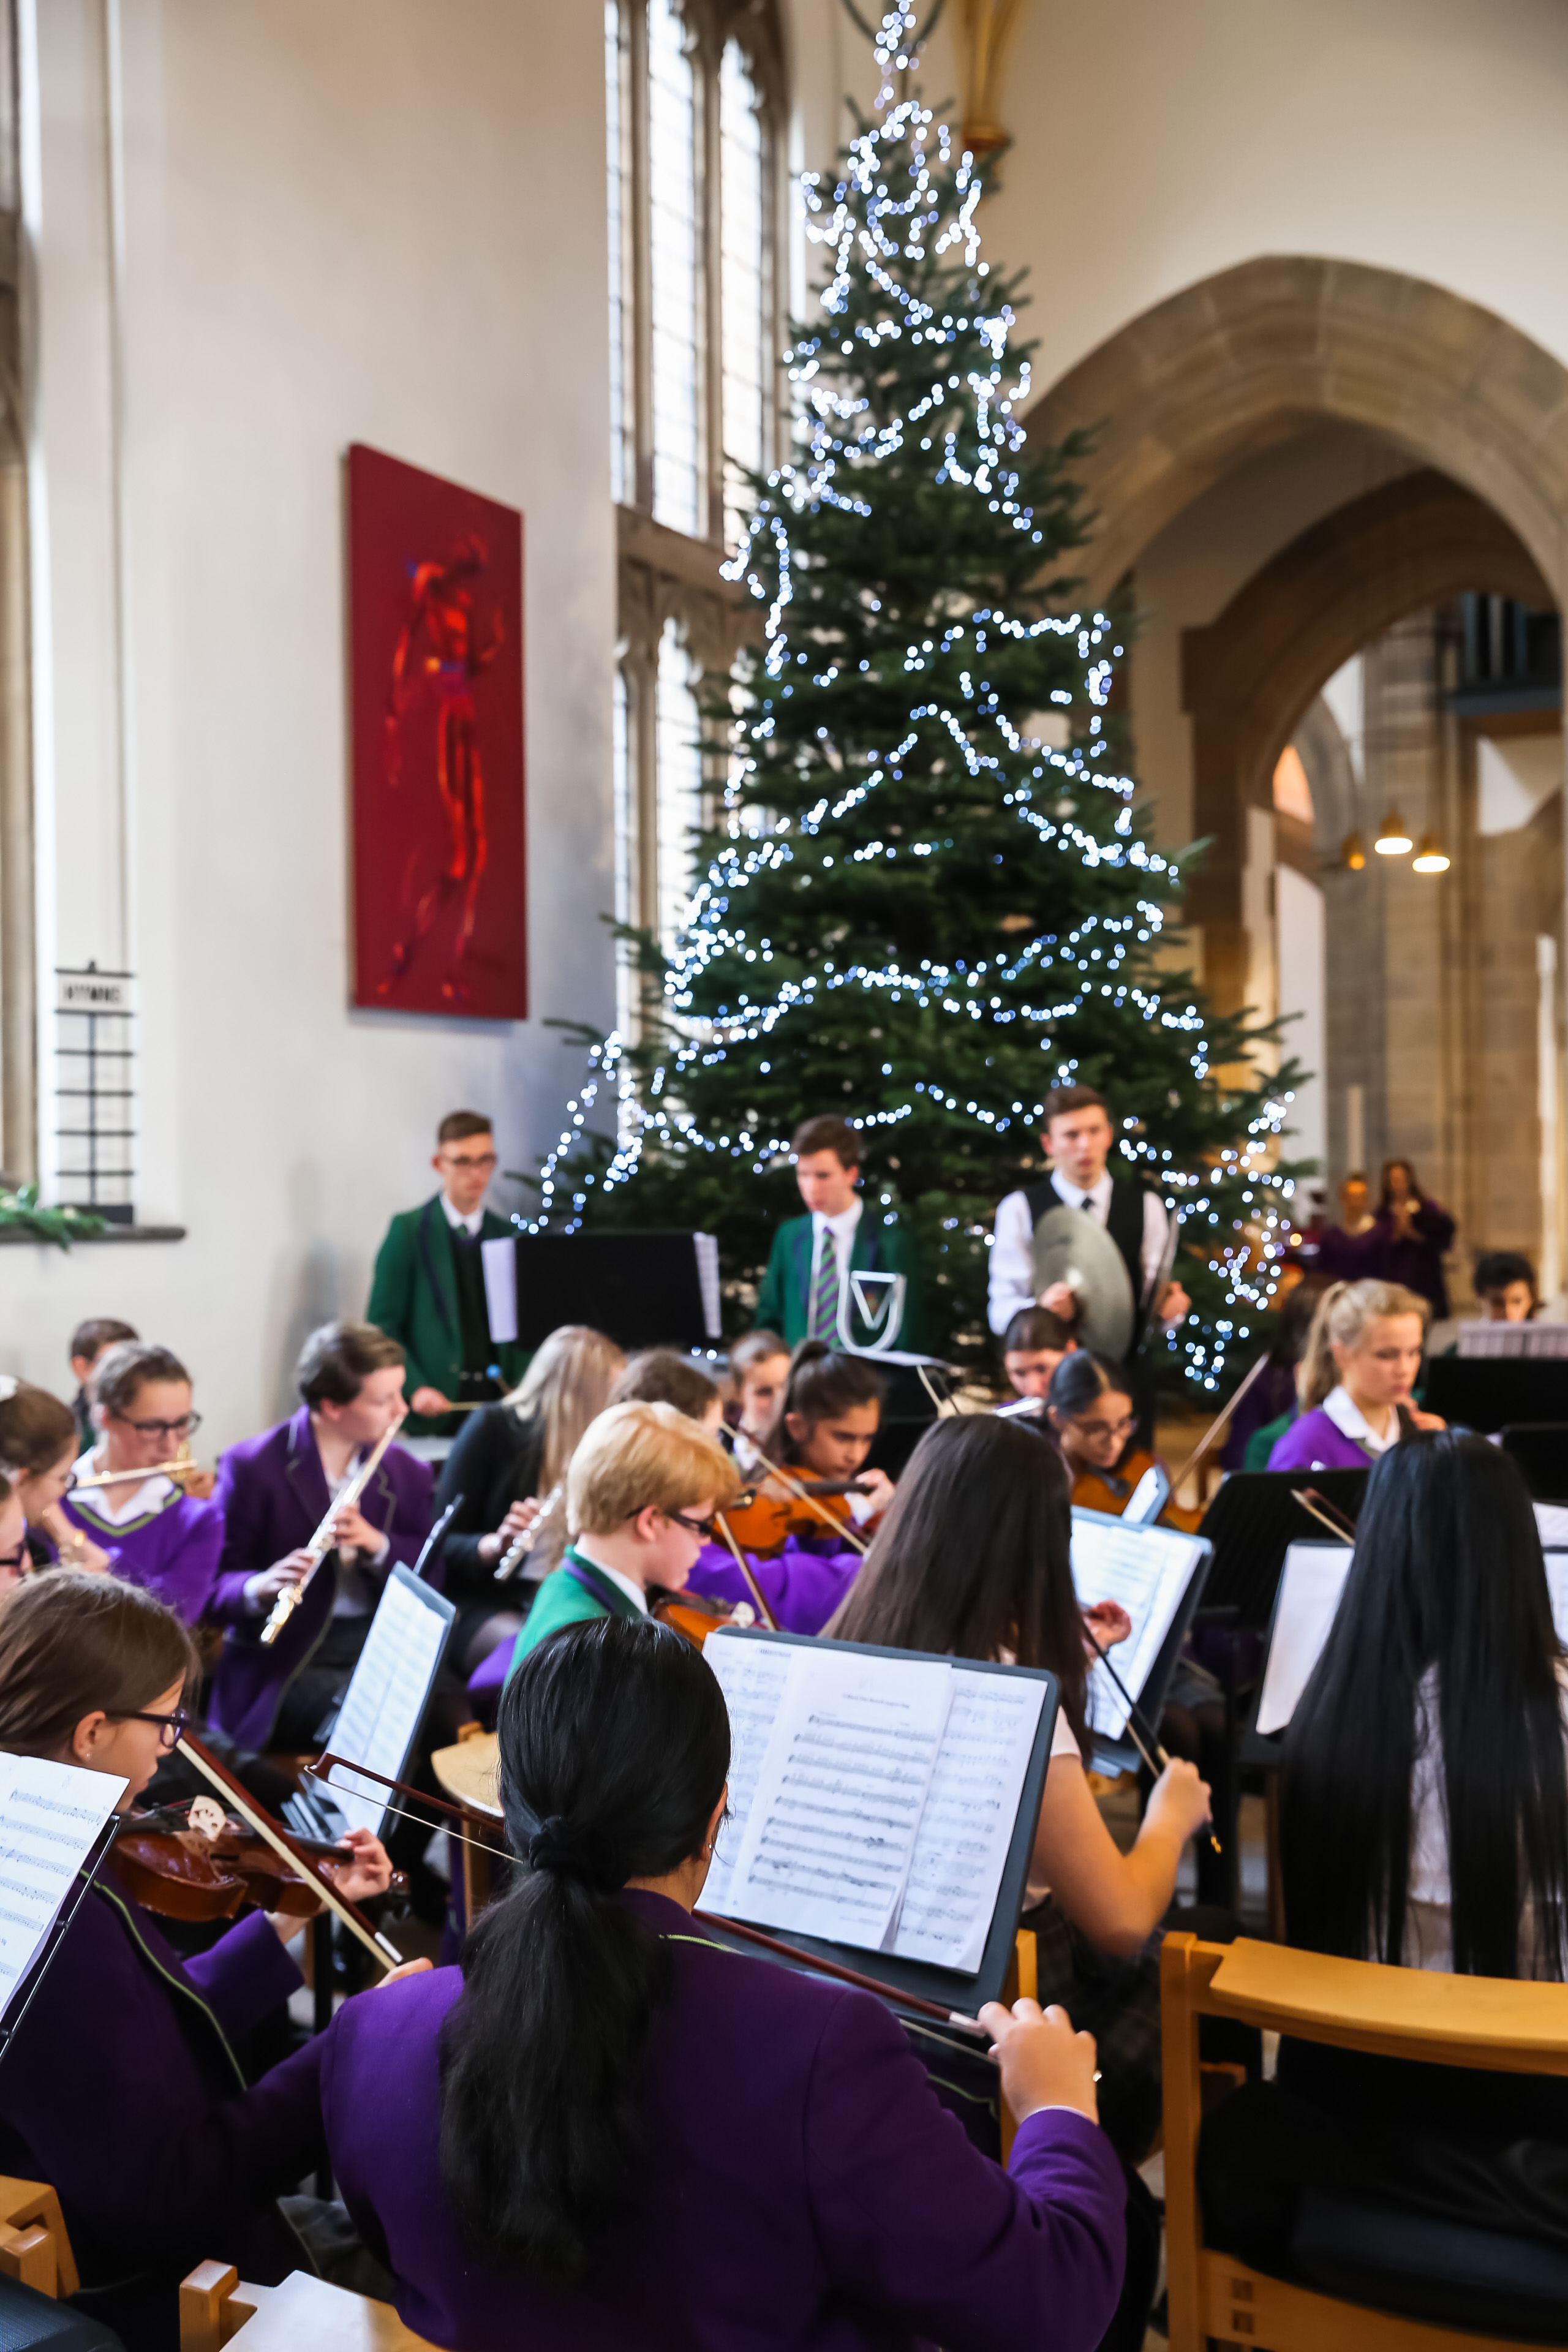 Members of the school orchestra perform at the Westholme senior school carol service at Blackburn Cathedral